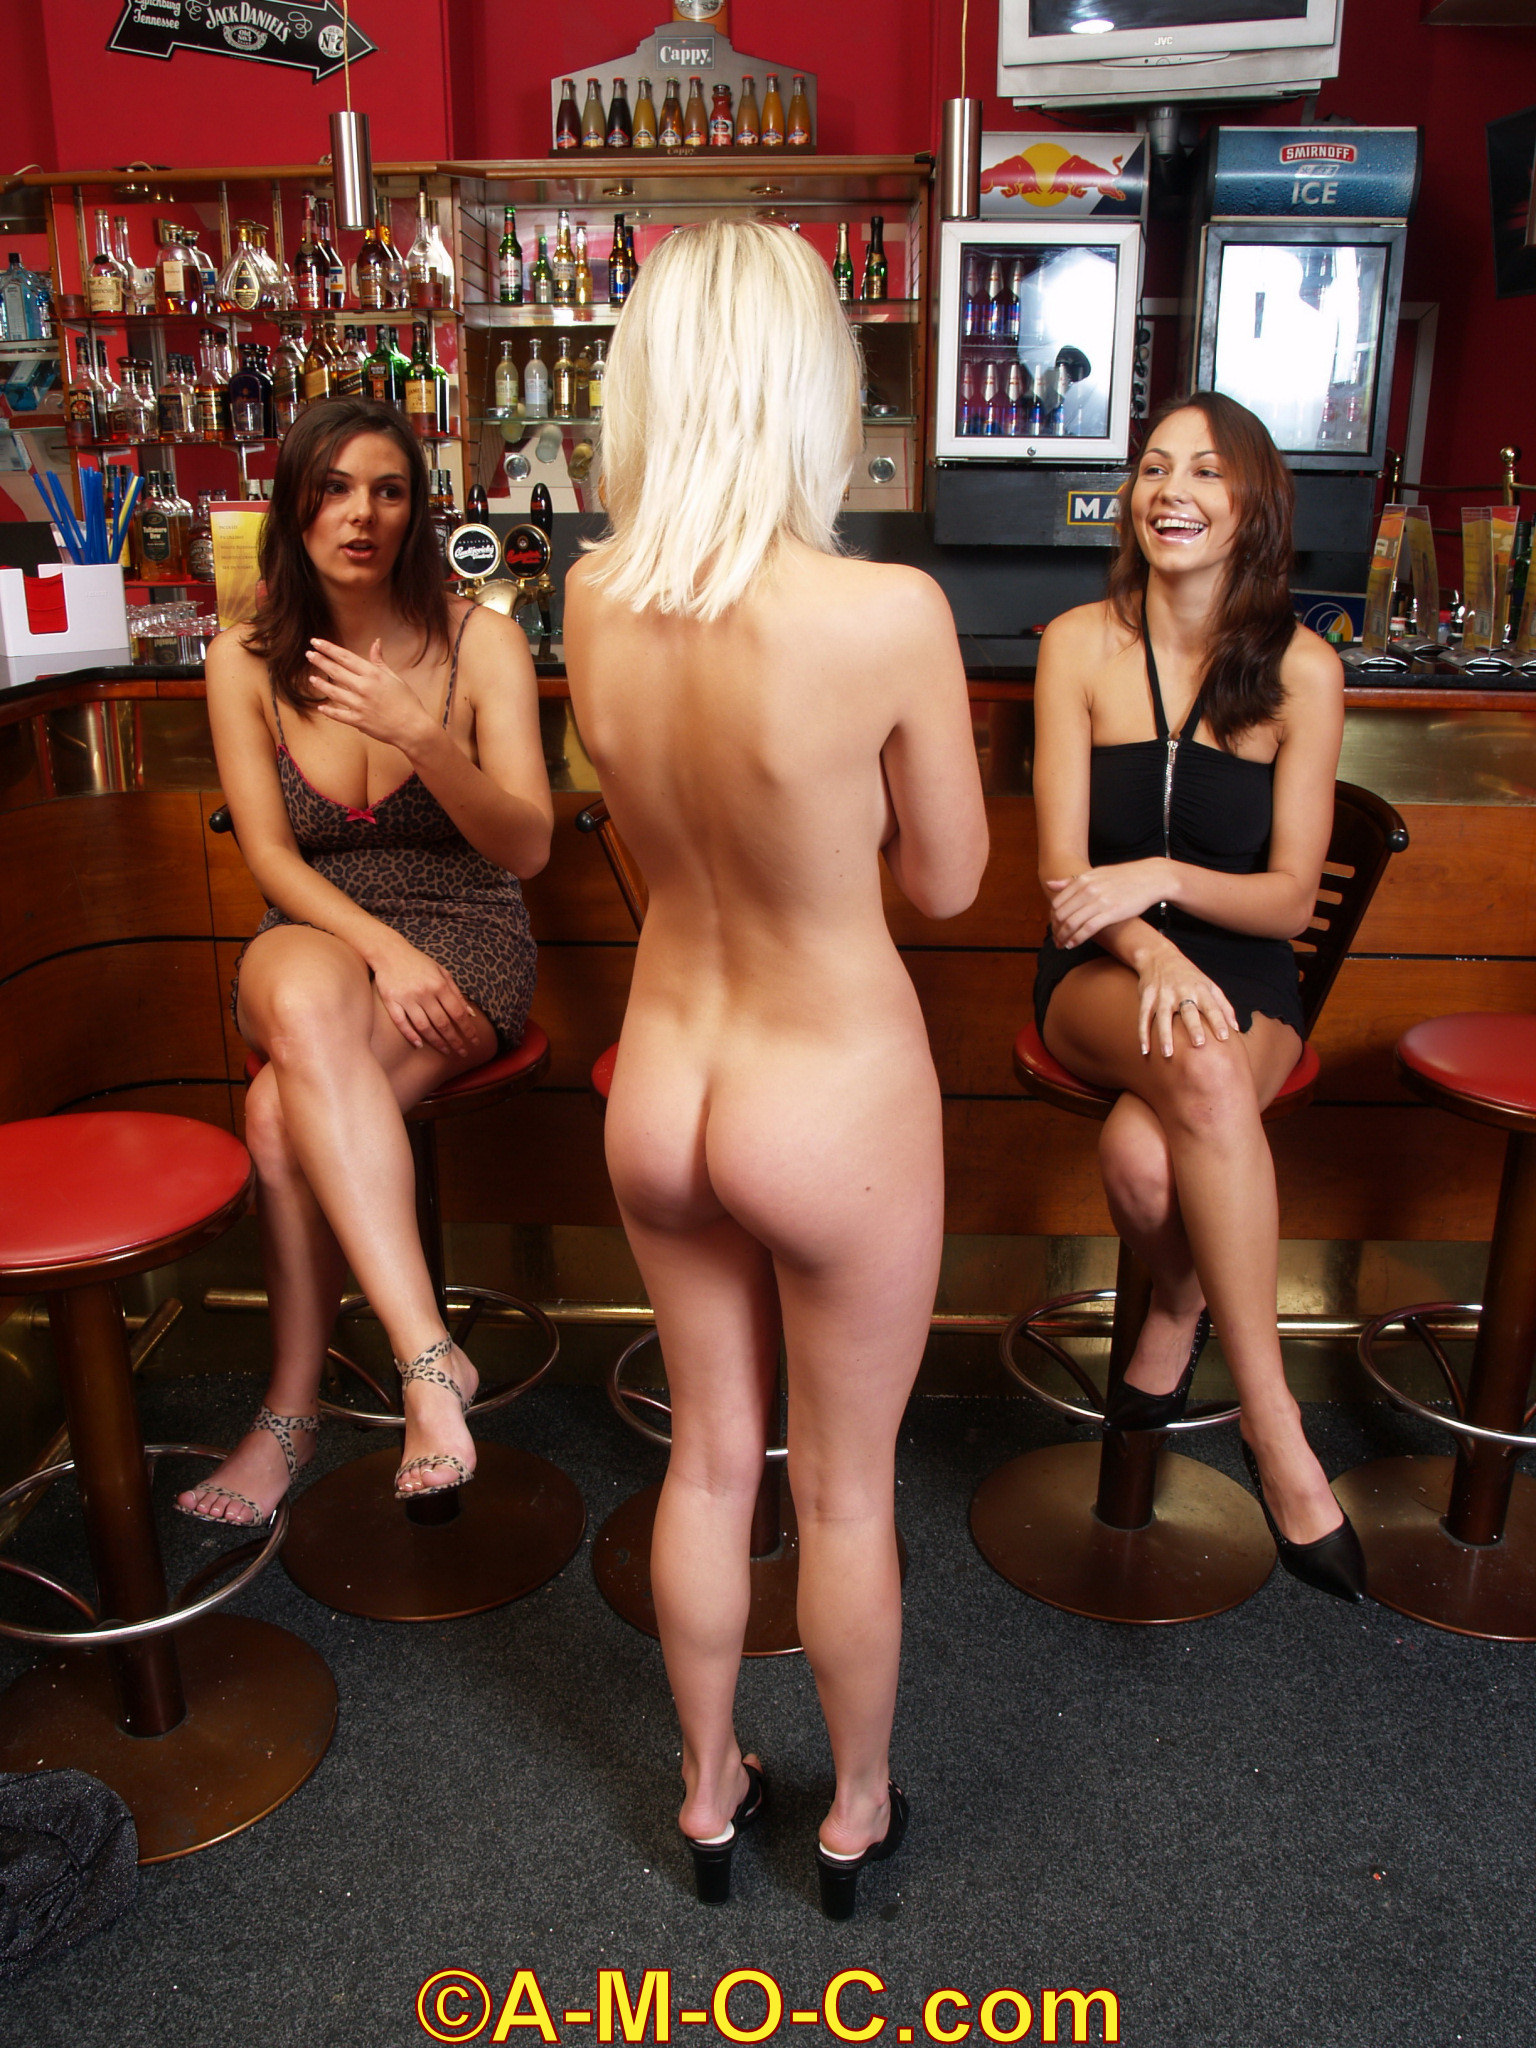 Davina stands naked in front of her friends